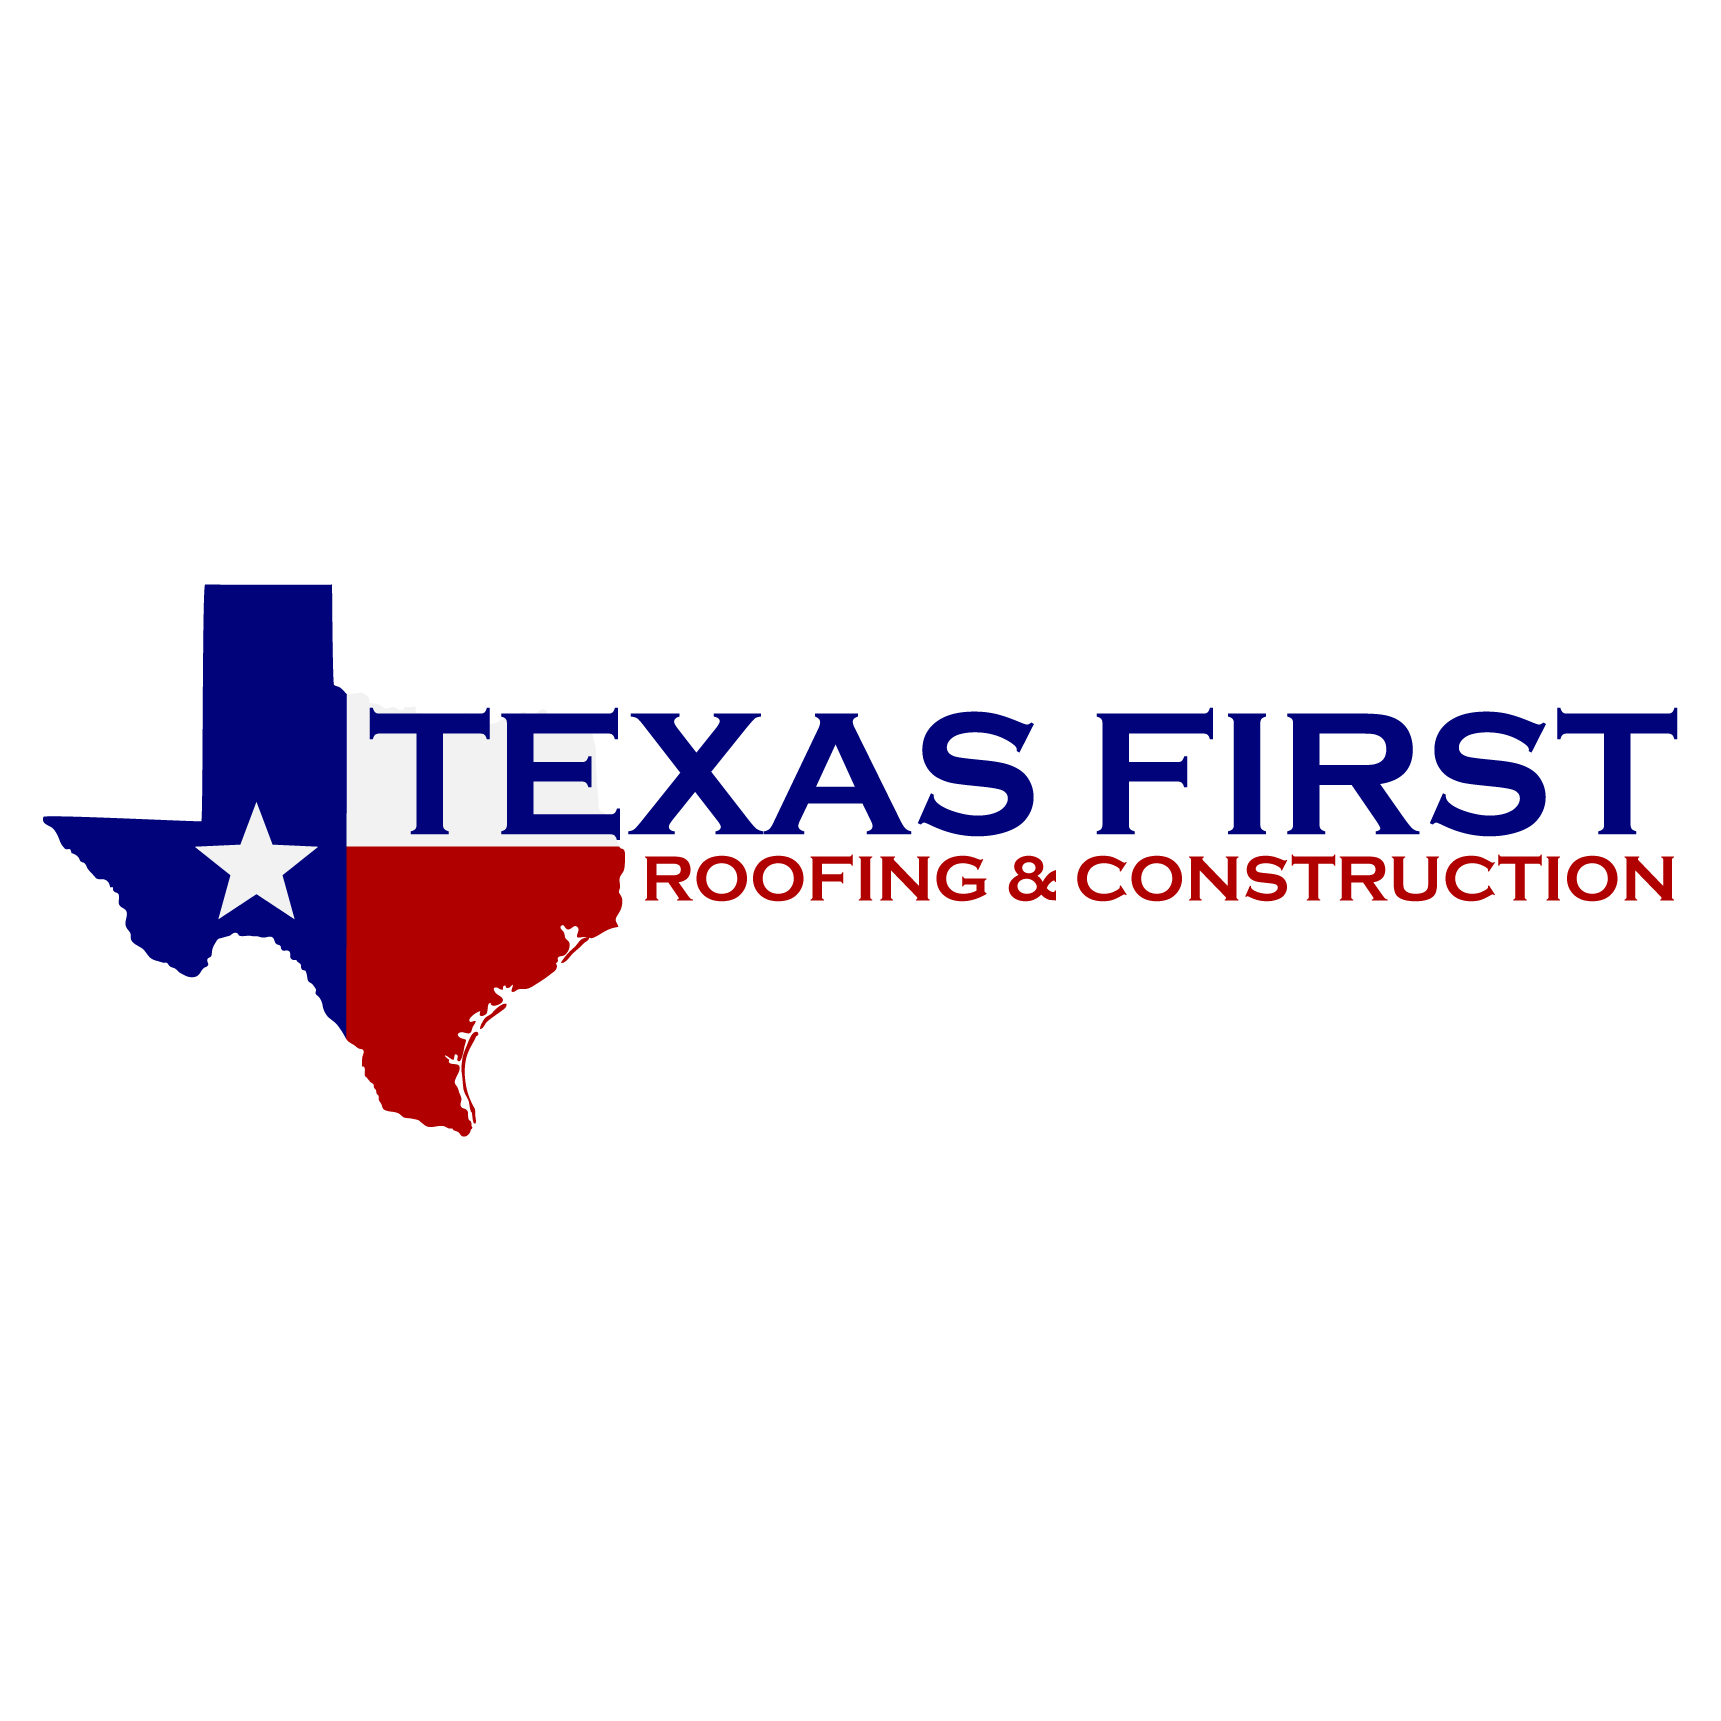 Texas First Roofing & Construction image 5